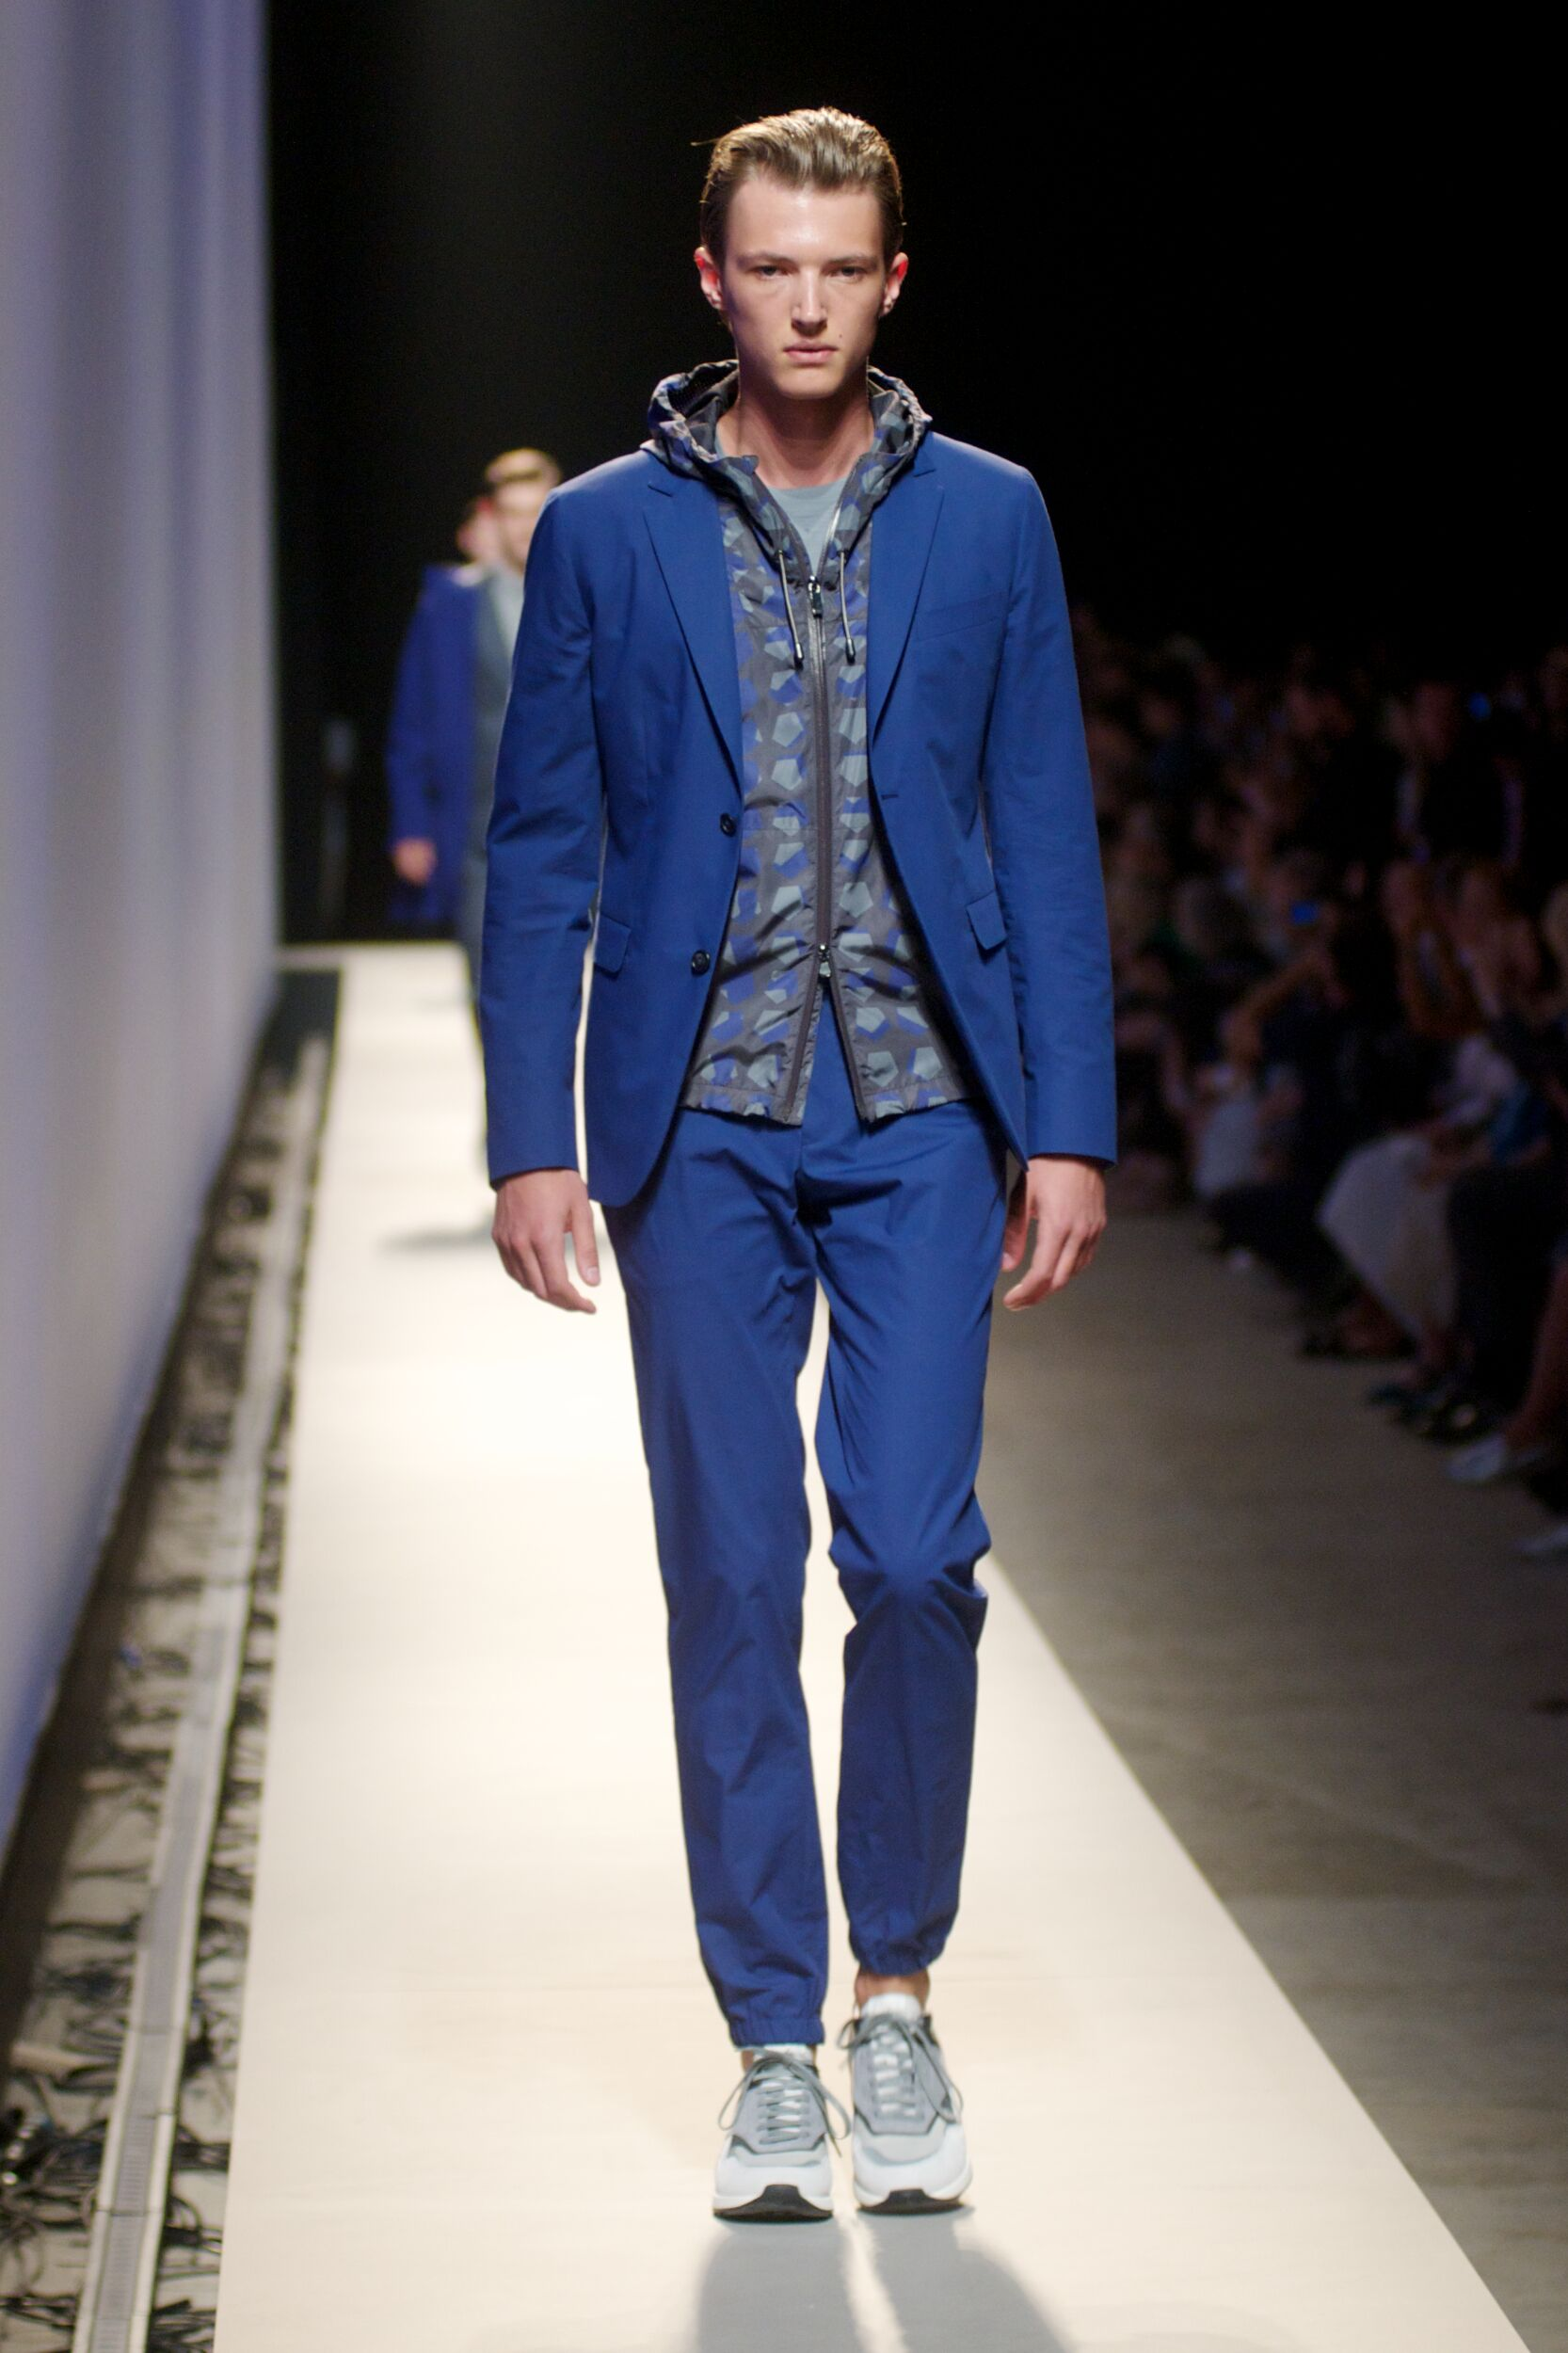 Men's Fashion Shows 2015 Men Fashion Show Summer